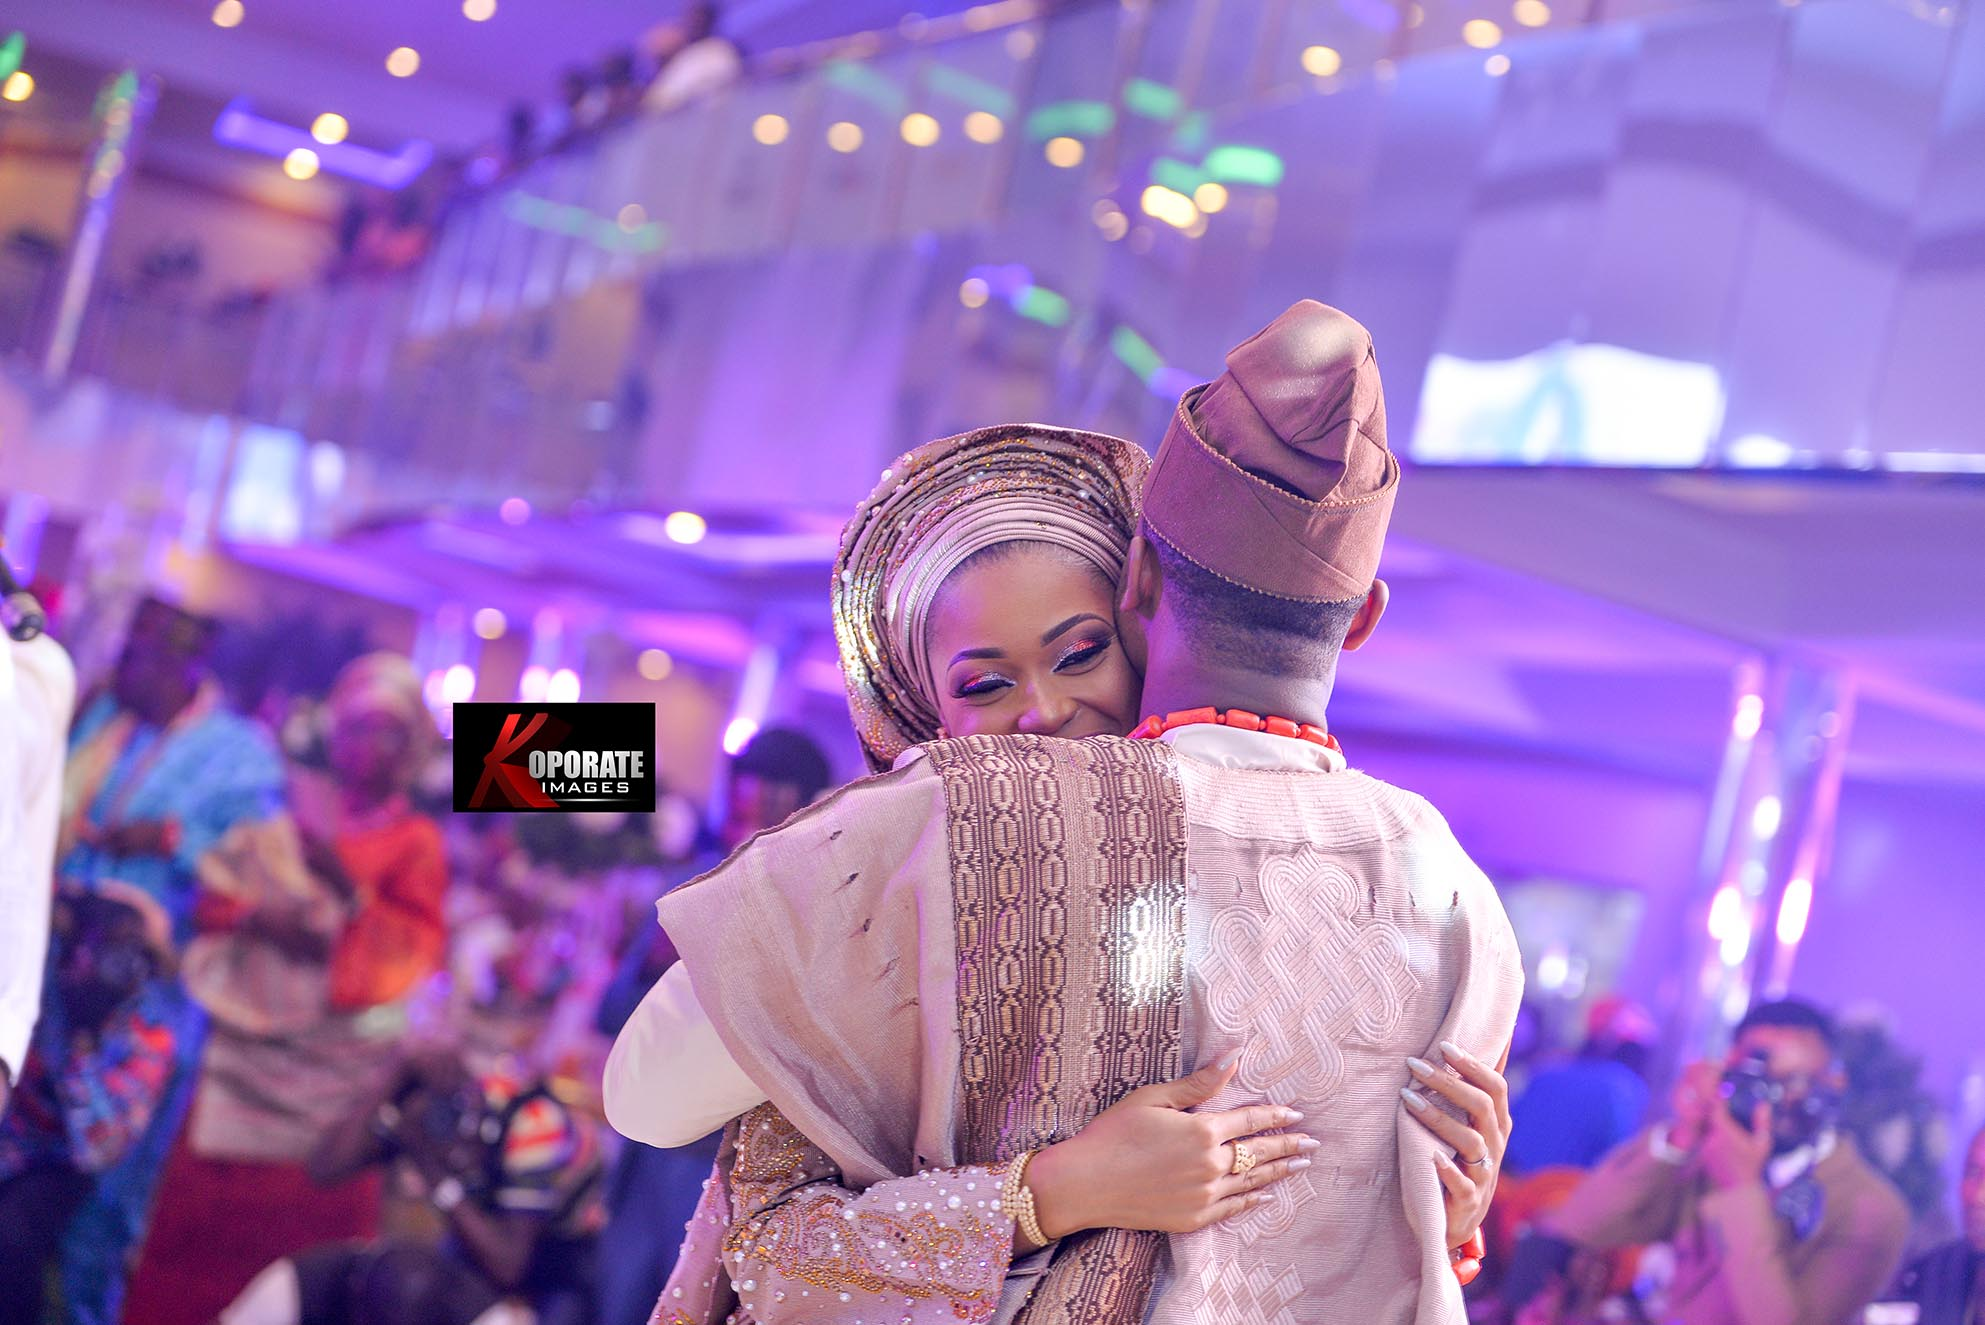 AMAZING BRIDE AND GROOM photos & videos taken by Koporate Images, Benin City, Edo state, Nigeria. Koporate images is a Photography & Video Coverage studio located in Benin City. We provide Professional Photographers for your weddings, birthdays and any special events